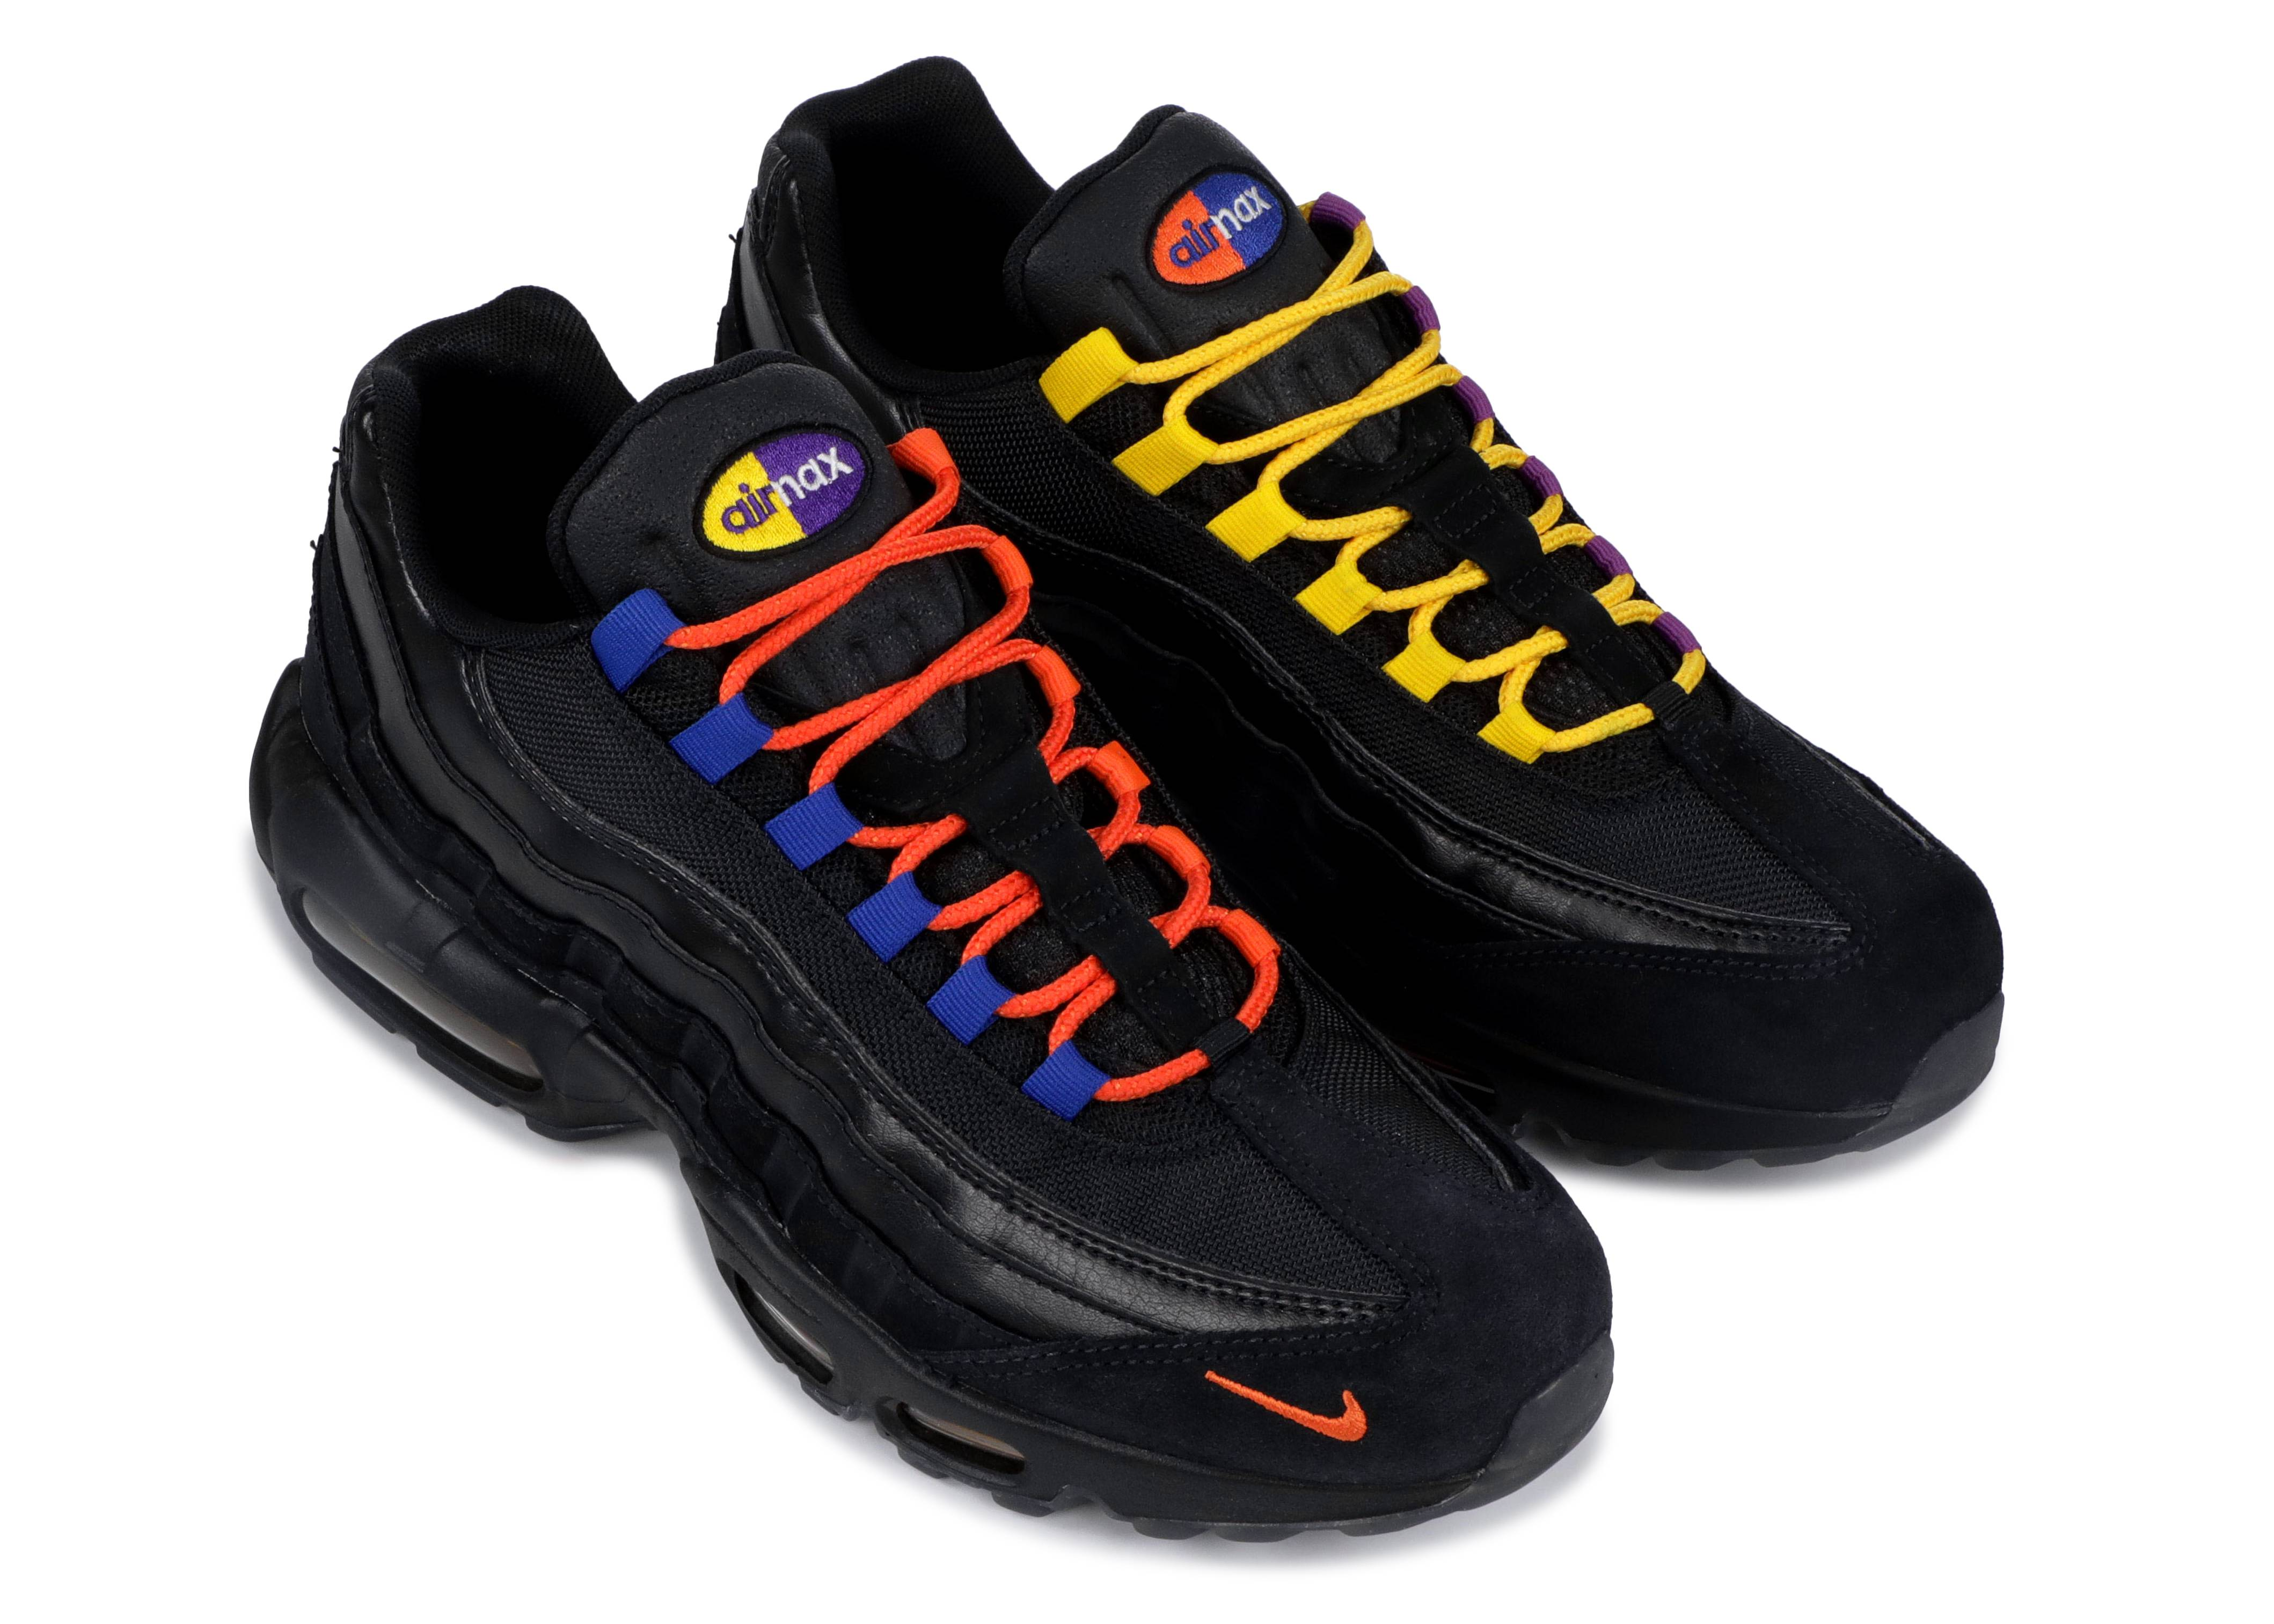 finest selection 8bb52 2459d nike air max 95 prm